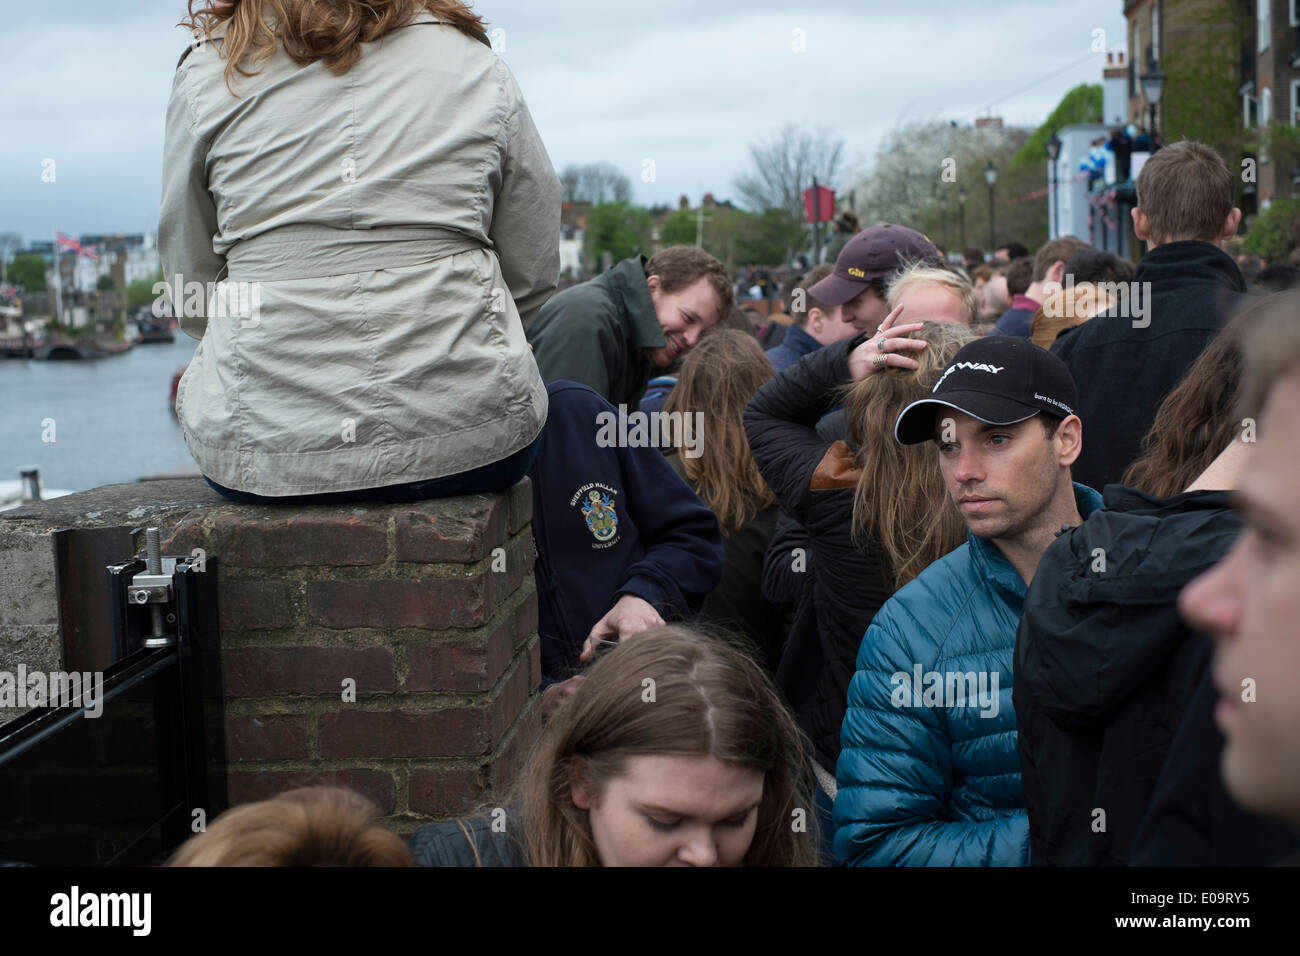 Spectators on the bank of the River Thames at Hammersmith during the annual Oxford and Cambridge Boat Race. - Stock Image